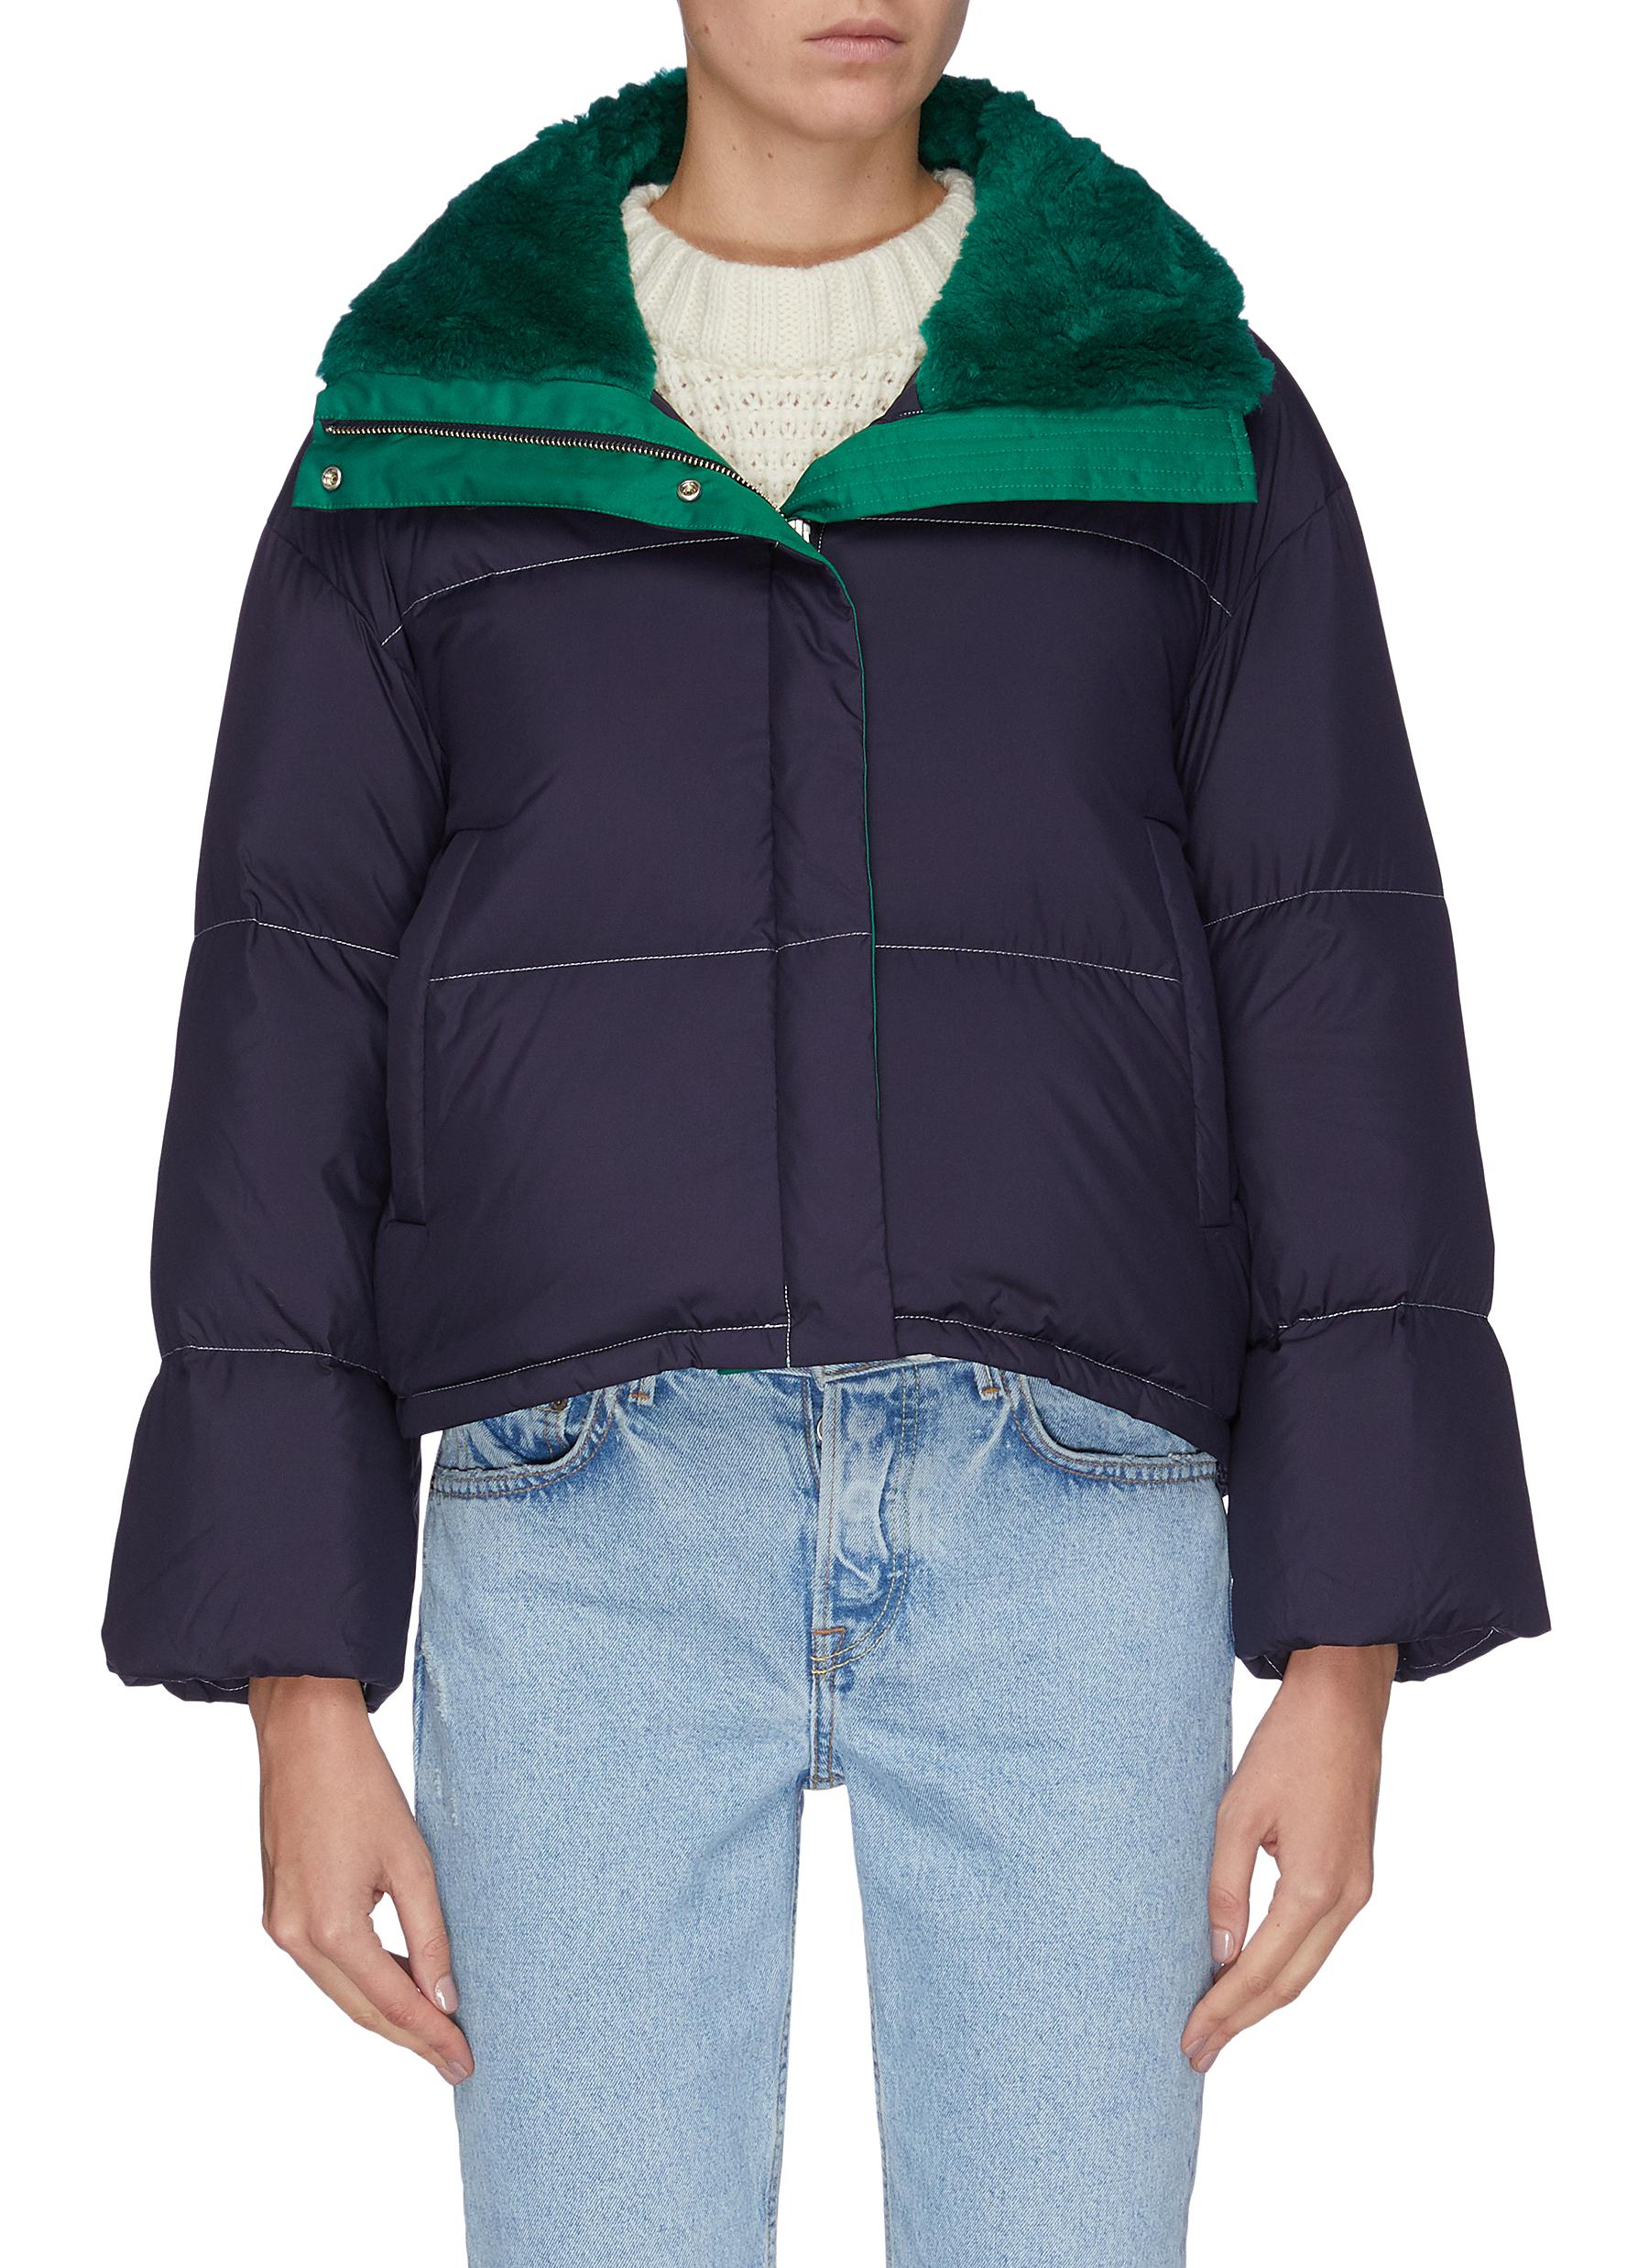 Contrast mohair lined quilted jacket by Short Sentence